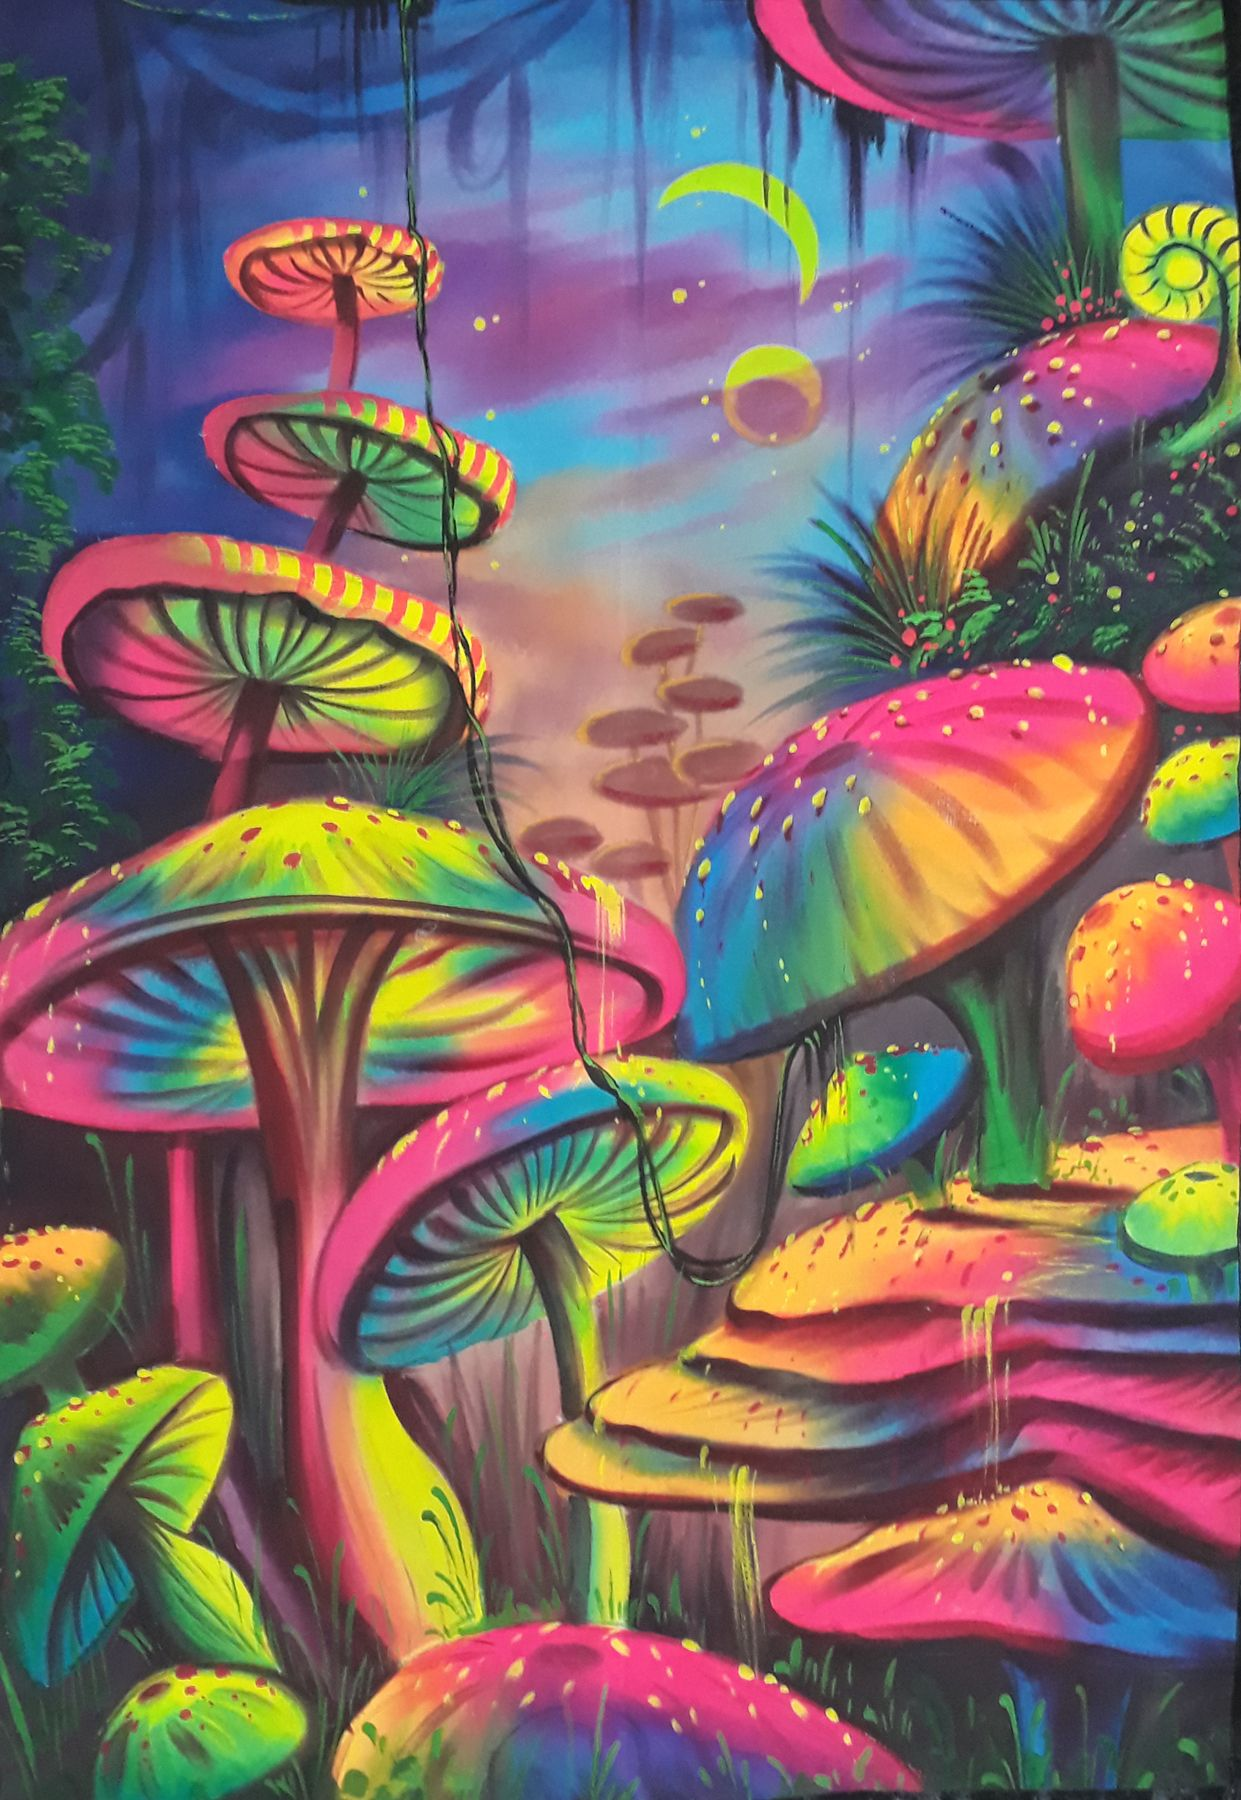 Mushrooms Fluorescent Painting Glow In Dark Uv Glow Painting Handmade Painting Psychadelic Art Trippy Painting Psychedelic Drawings